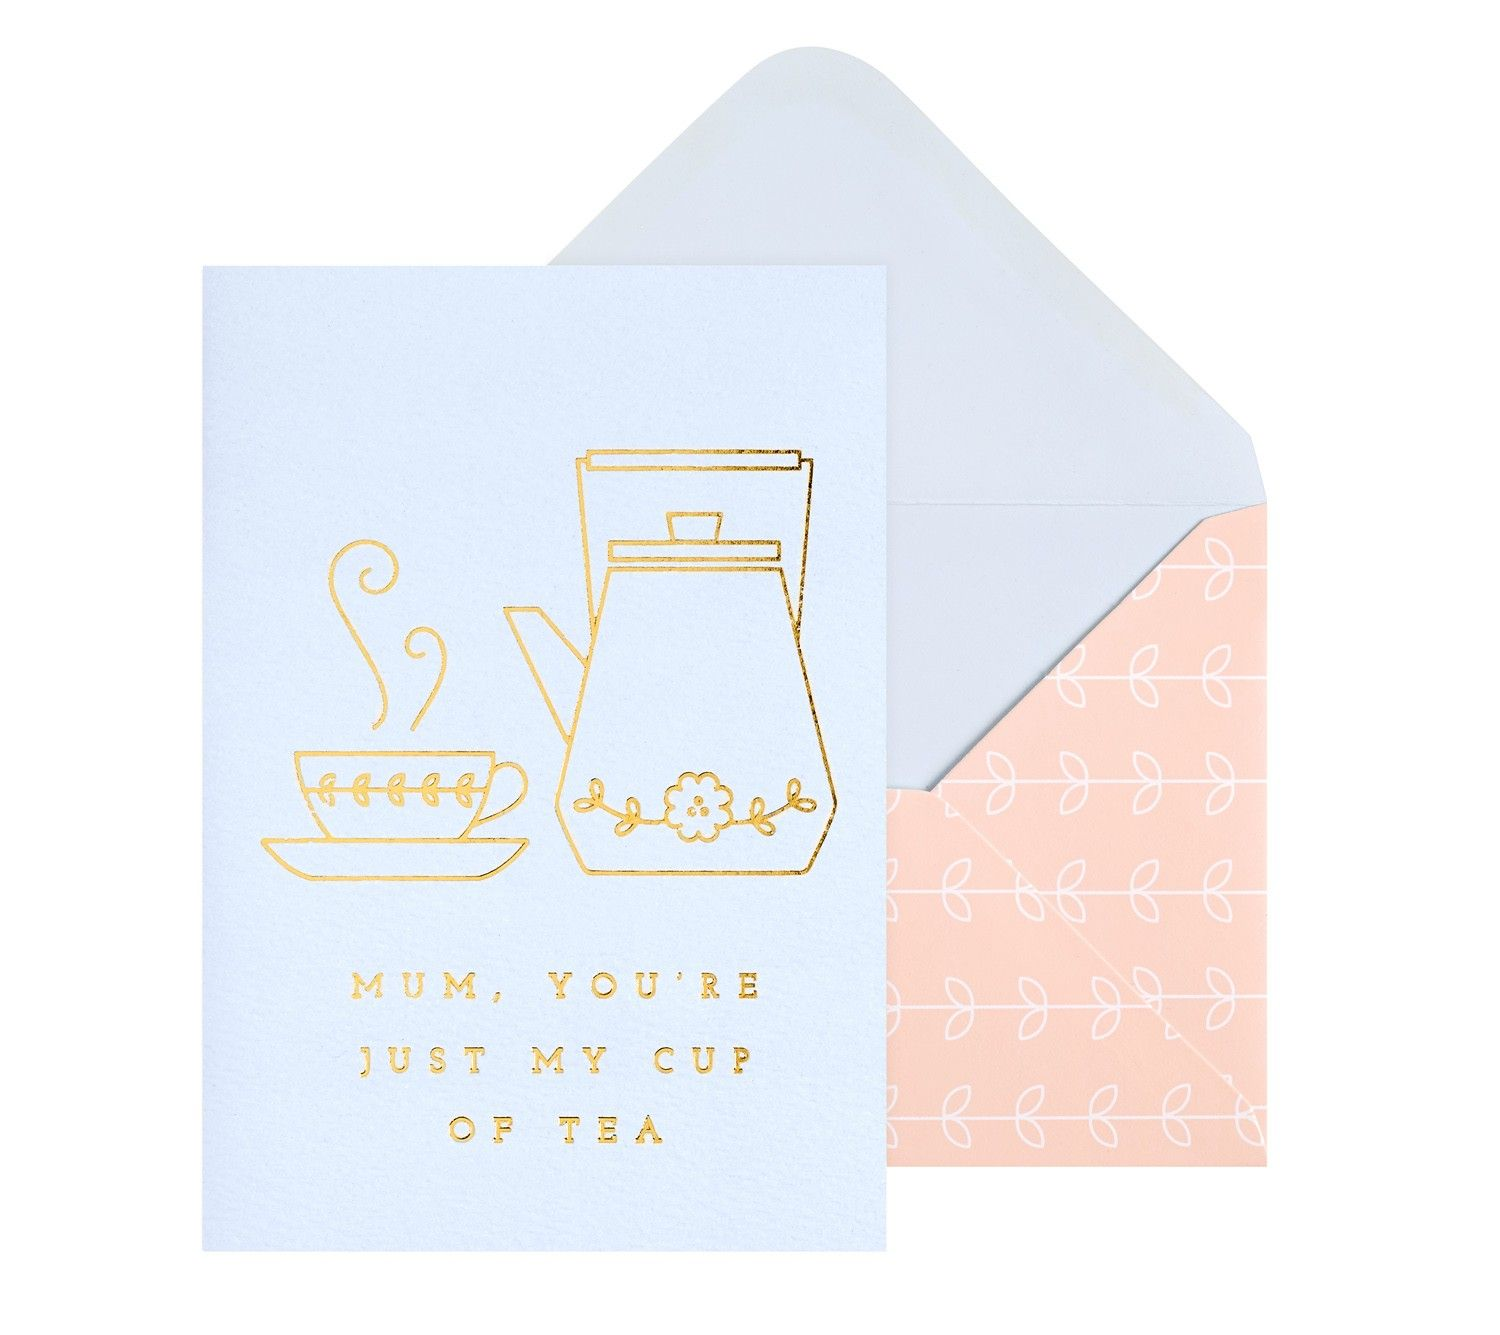 Let mum know sheus just your cup of tea with this cute and stylish